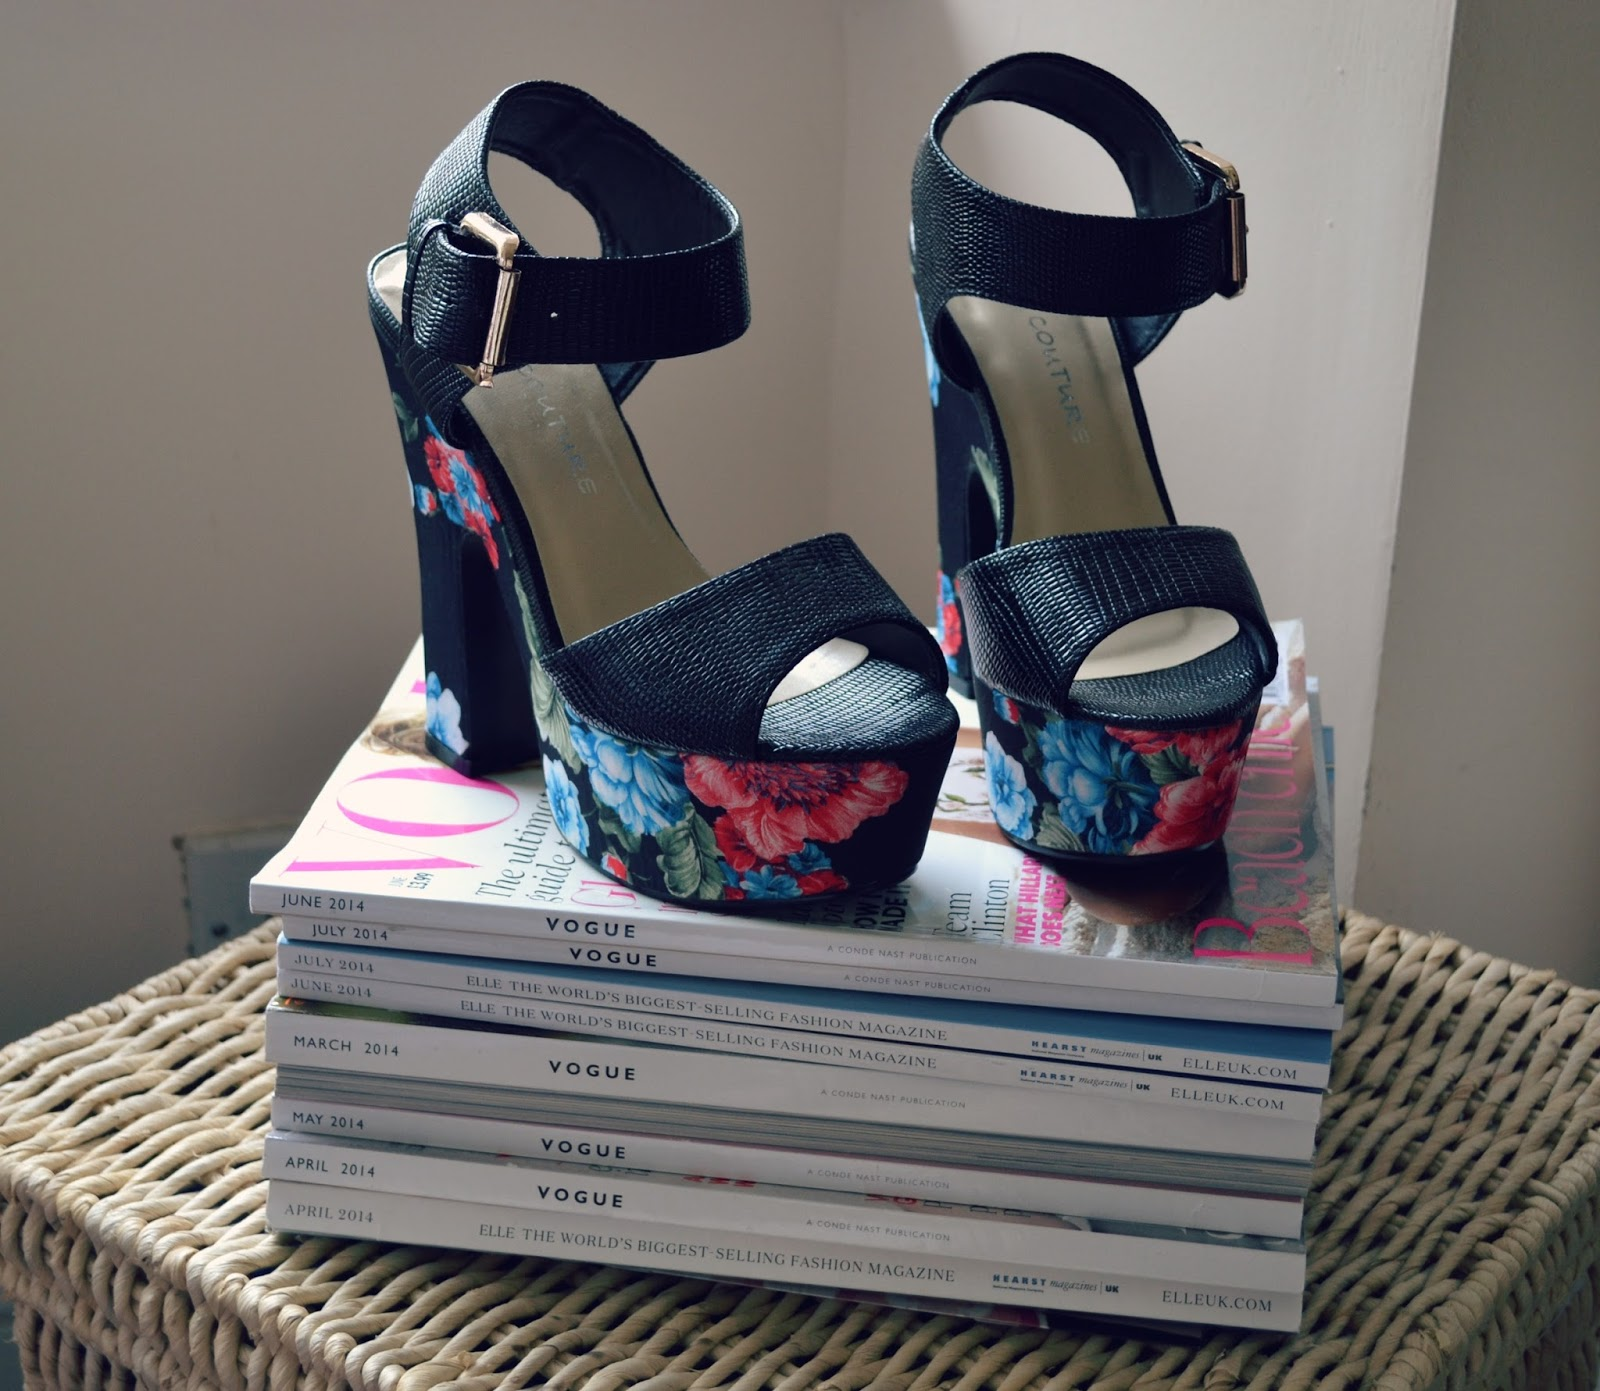 quiz tropical floral platform sandal heels shoes